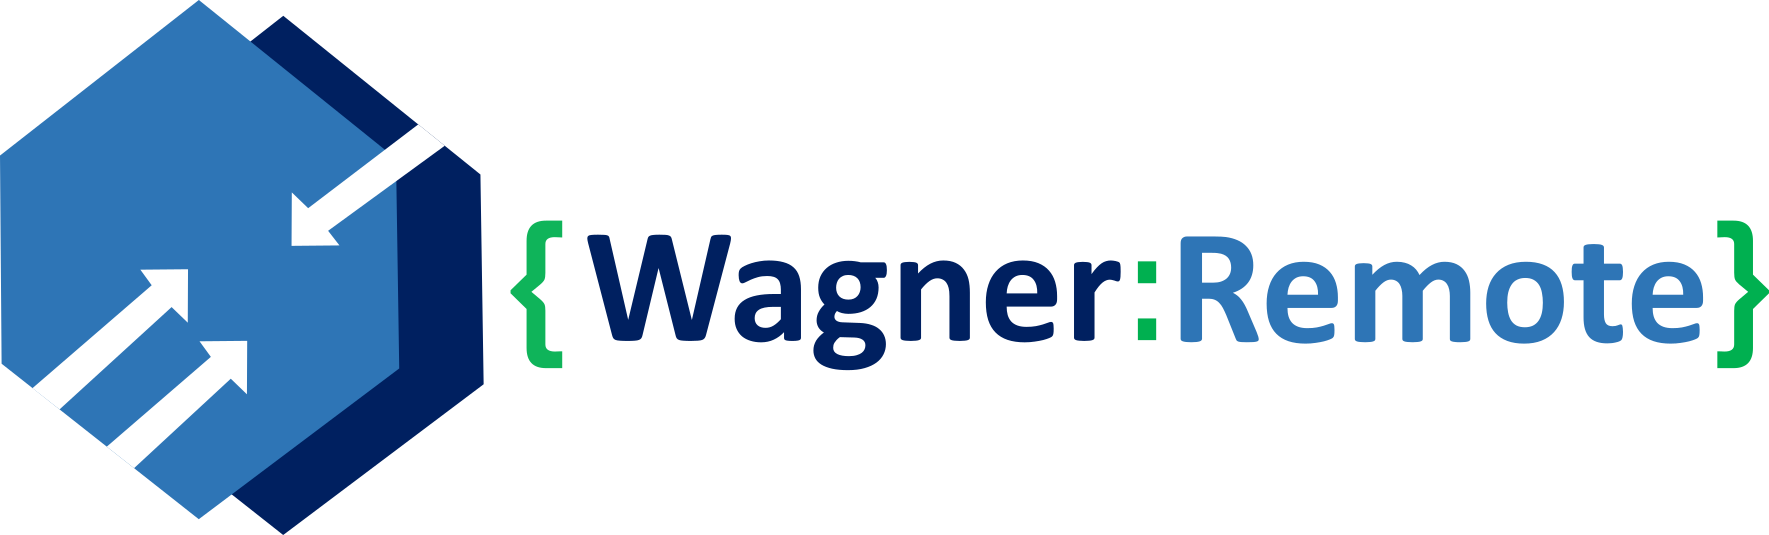 Wagner-Remote